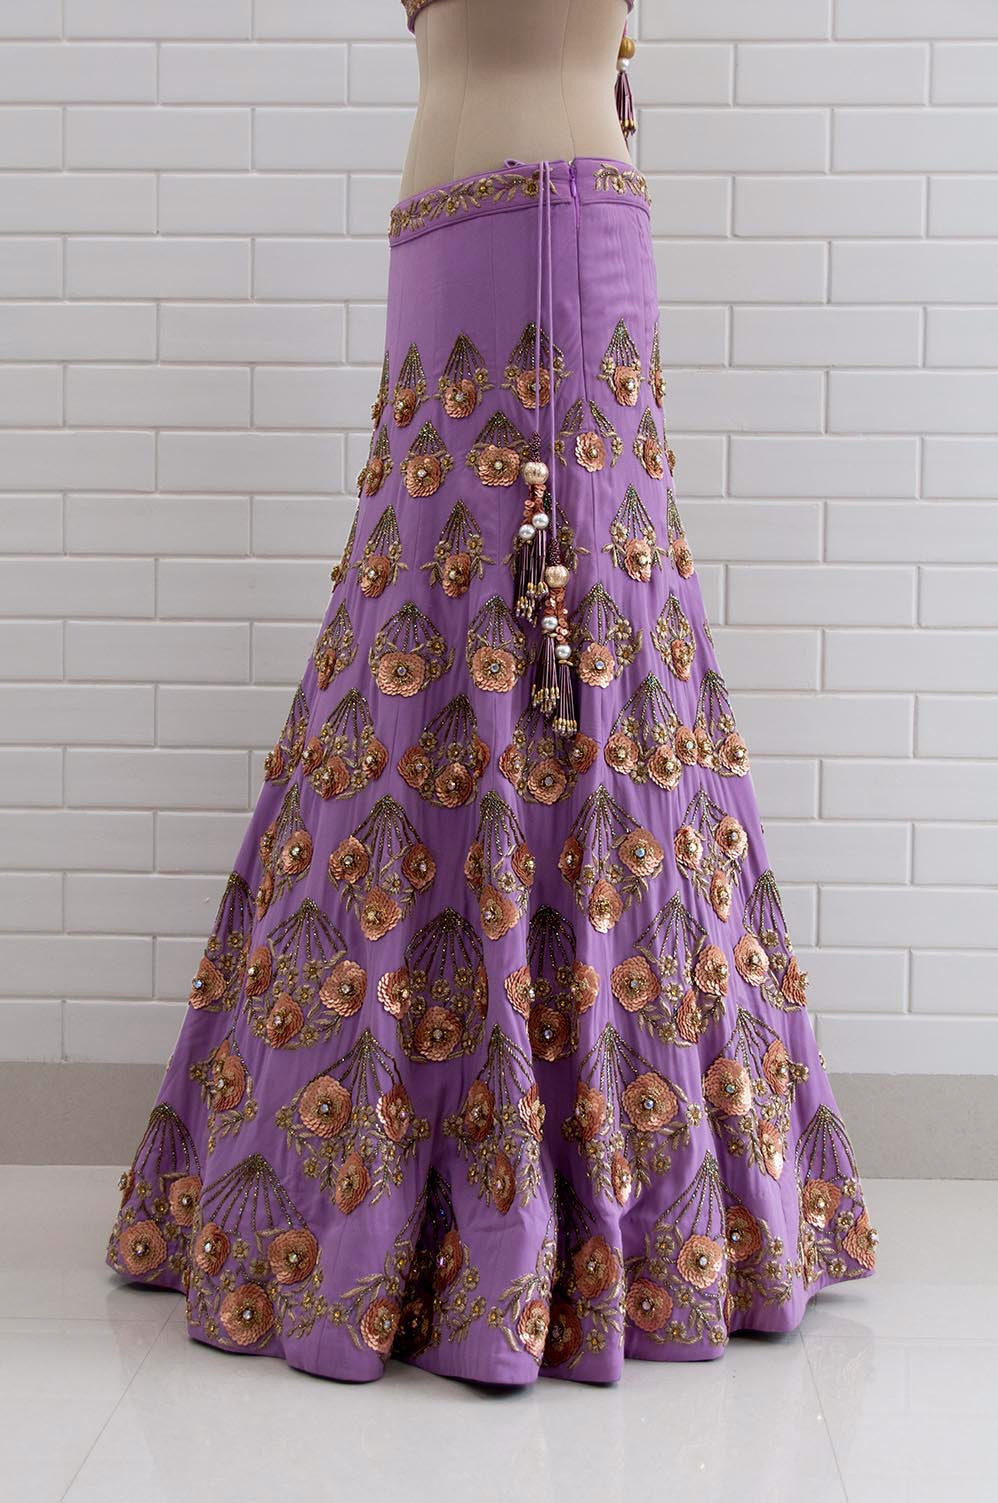 GIULIETTA : Violet Tulle floral zardozi handfans embroidered lehenga with Jaal work choli blouse and dupatta